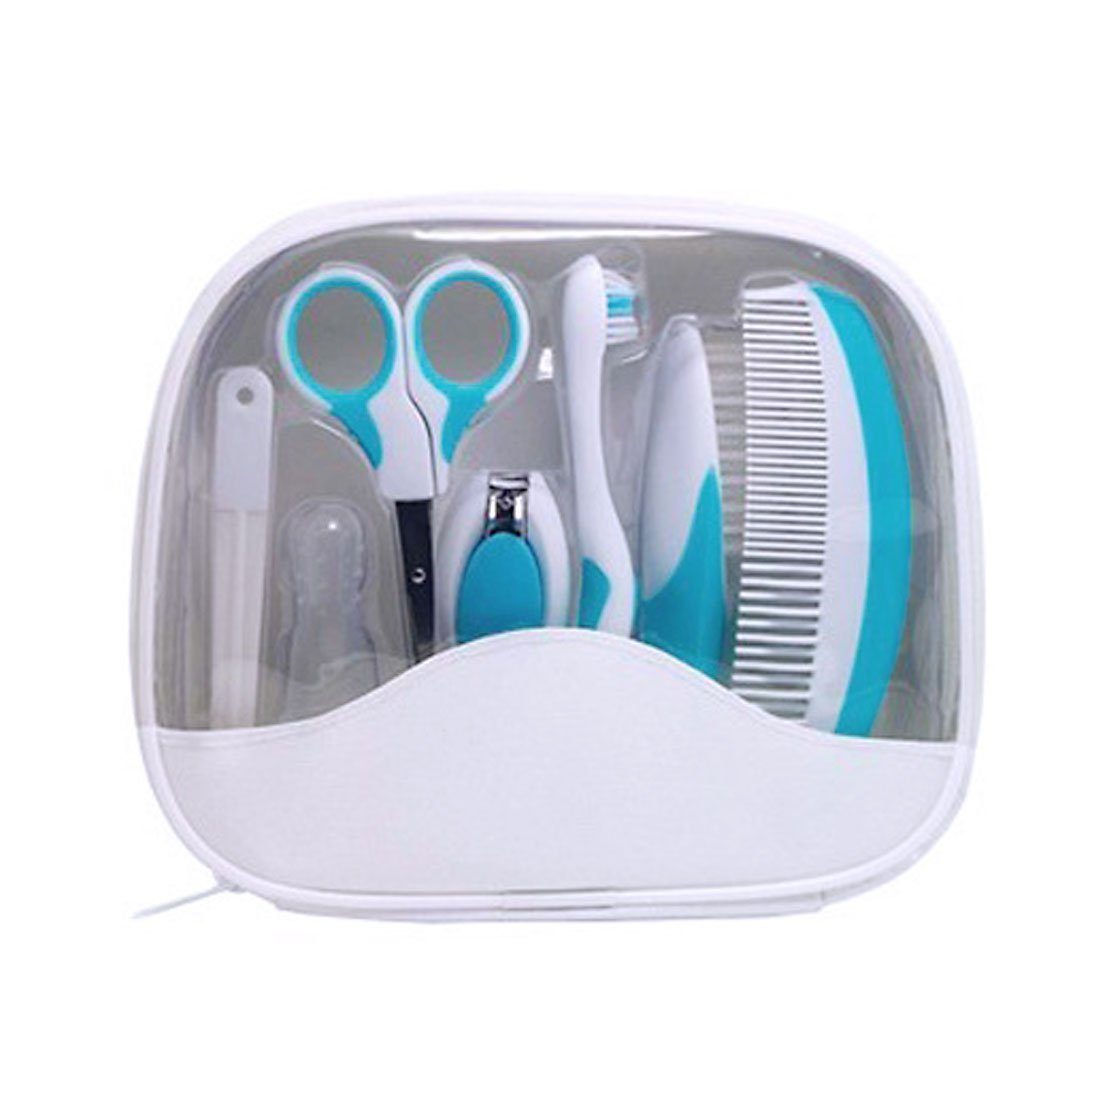 uxcellBaby Kid Toothbrush Nail Clipper Hair Comb Brush Care Grooming Set w/Storage Bag US-SA-AJD-314737